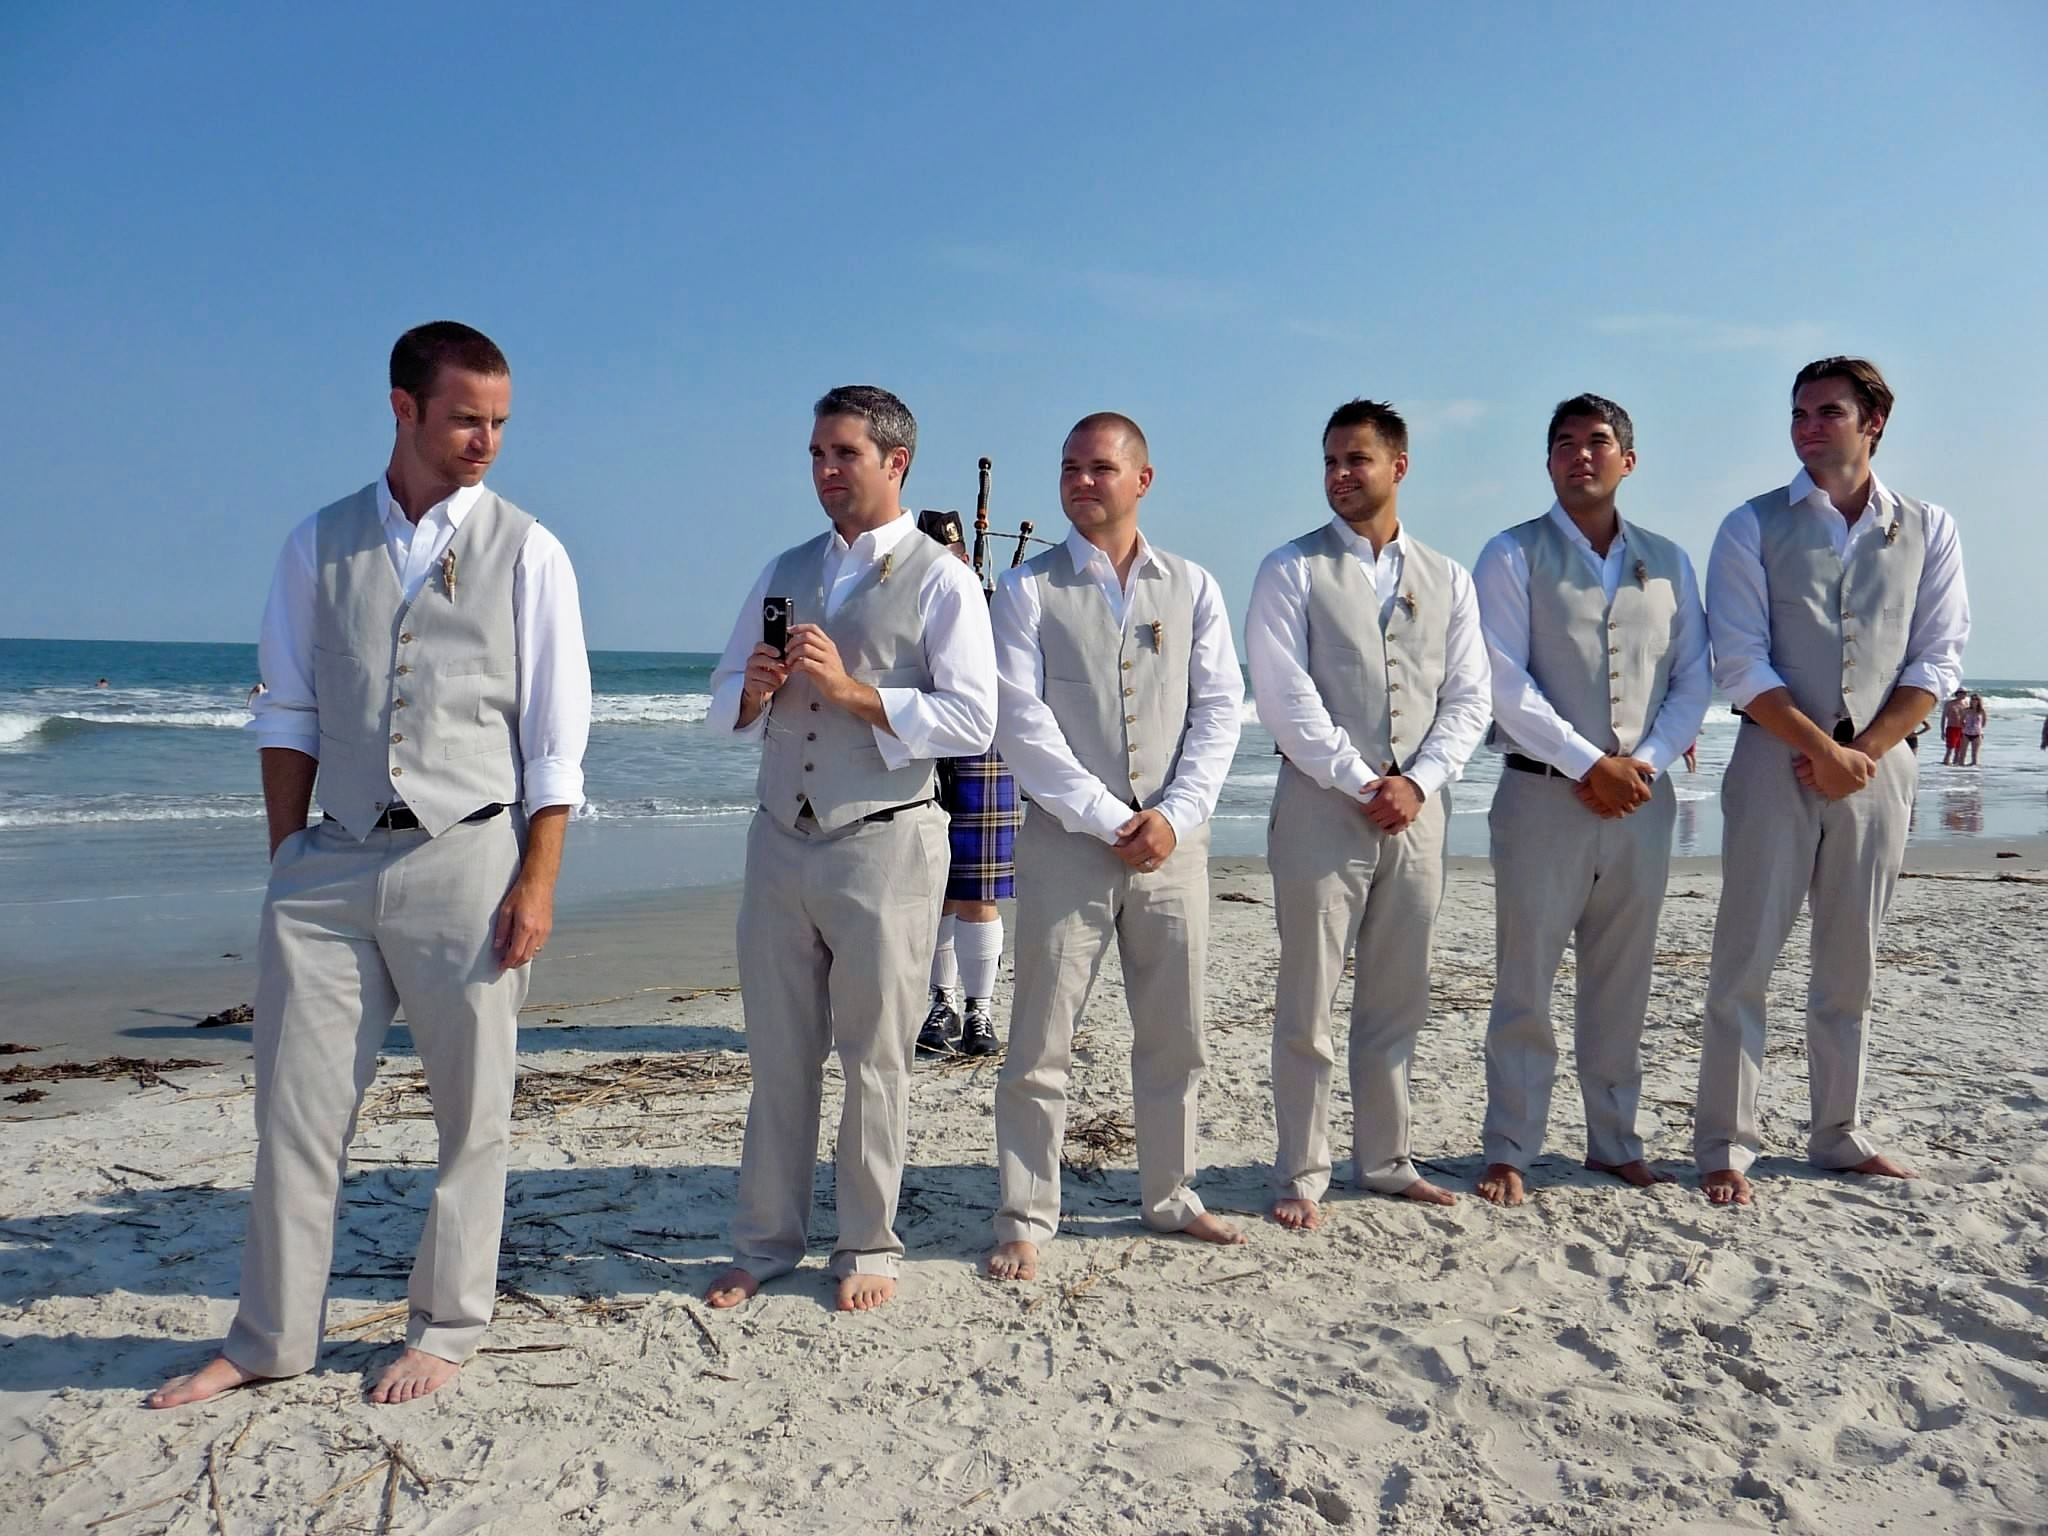 Brandastyle Web Blog DESTINATION WEDDING SEMI FORMAL BEACH STYLE